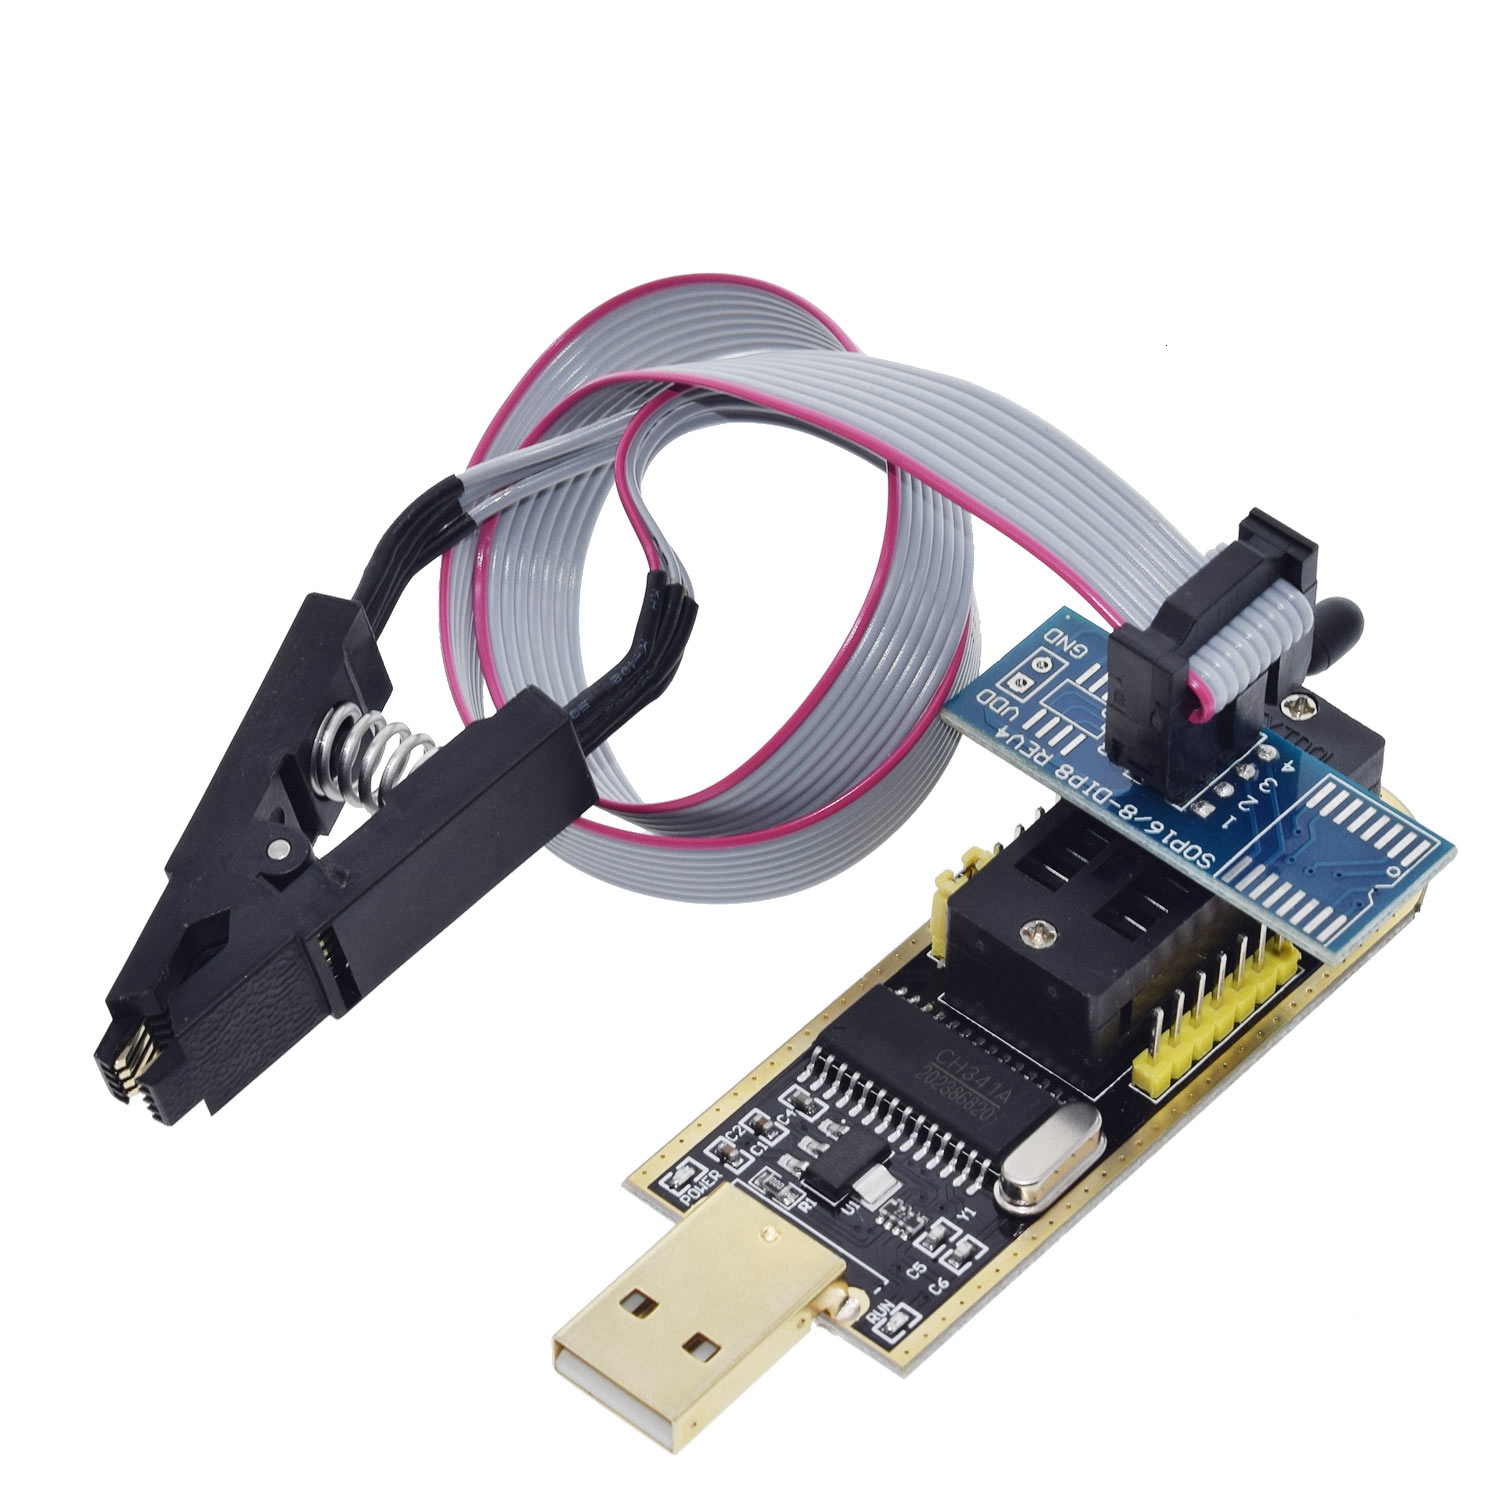 Image 2 - TZT CH341A 24 25 Series EEPROM Flash BIOS USB Programmer Module + SOIC8 SOP8 Test Clip For EEPROM 93CXX / 25CXX / 24CXX-in Integrated Circuits from Electronic Components & Supplies